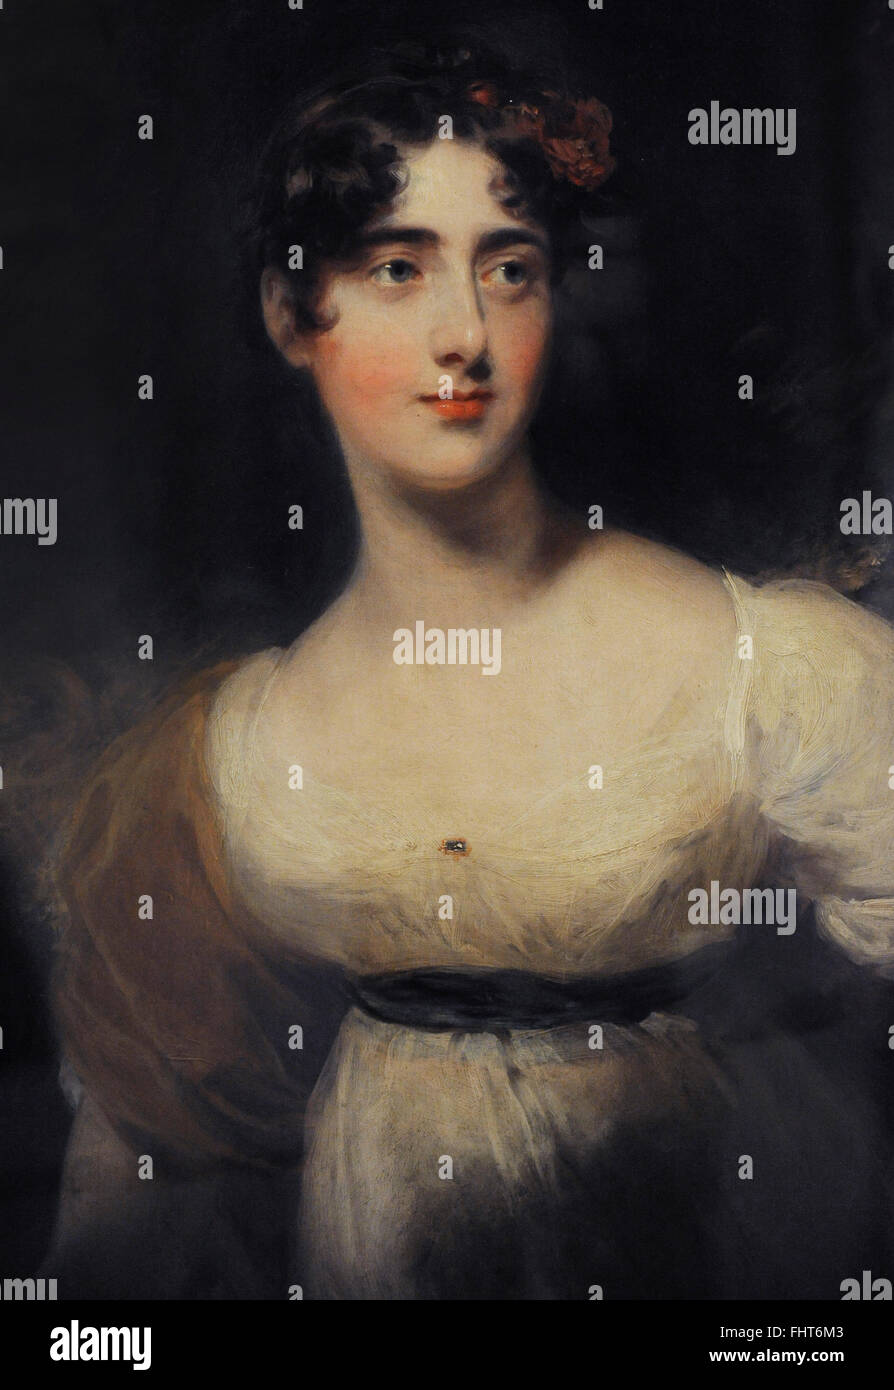 Emily Harriet Wellesley-Pole, Lady Raglan (1792-1881). Portrait by Thomas Lawrence (1769-1830), 1814. The State - Stock Image